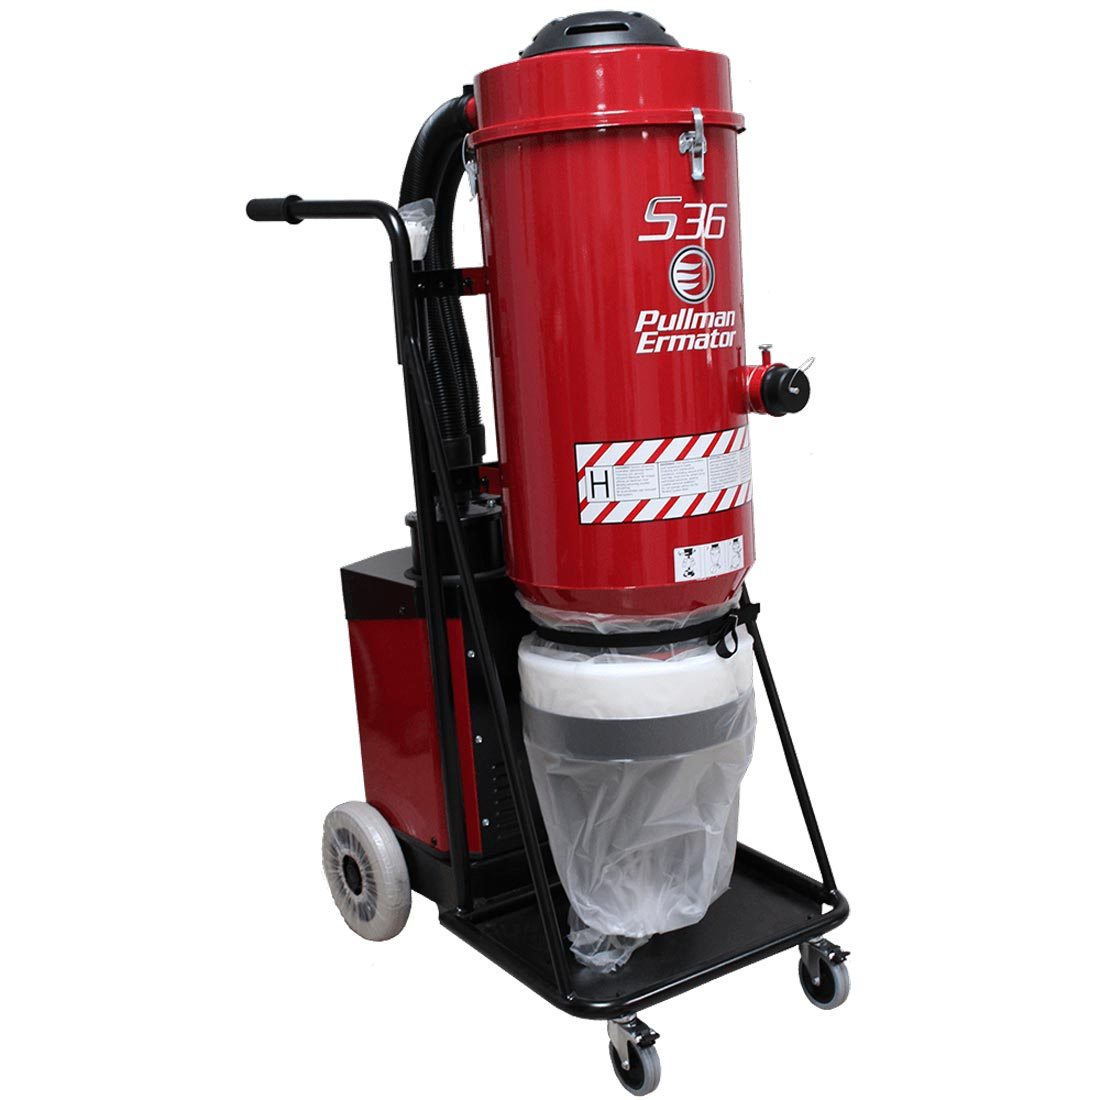 Demo Husqvarna Pullman Ermator S36 Hepa Vacuum 240V 14Amp 353Cfm Dust Collector 967753601 967663802B Used S 36 B Rated